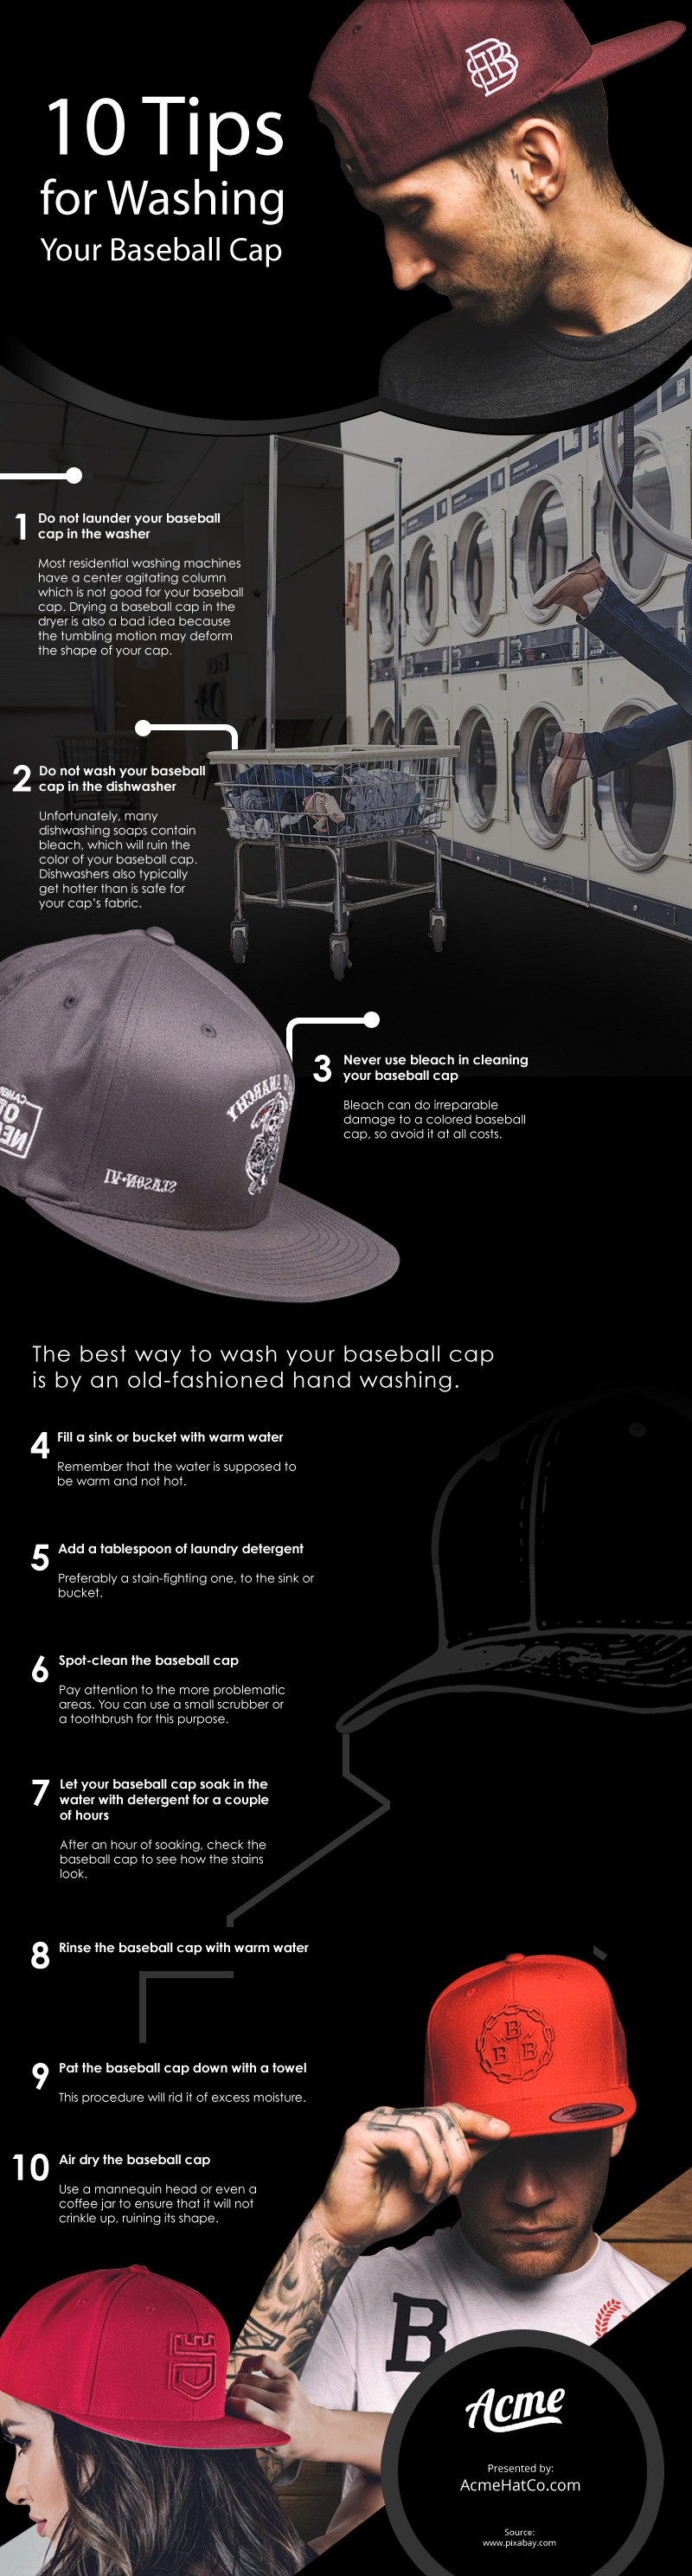 10 Tips for Washing Your Baseball Caps Infographic